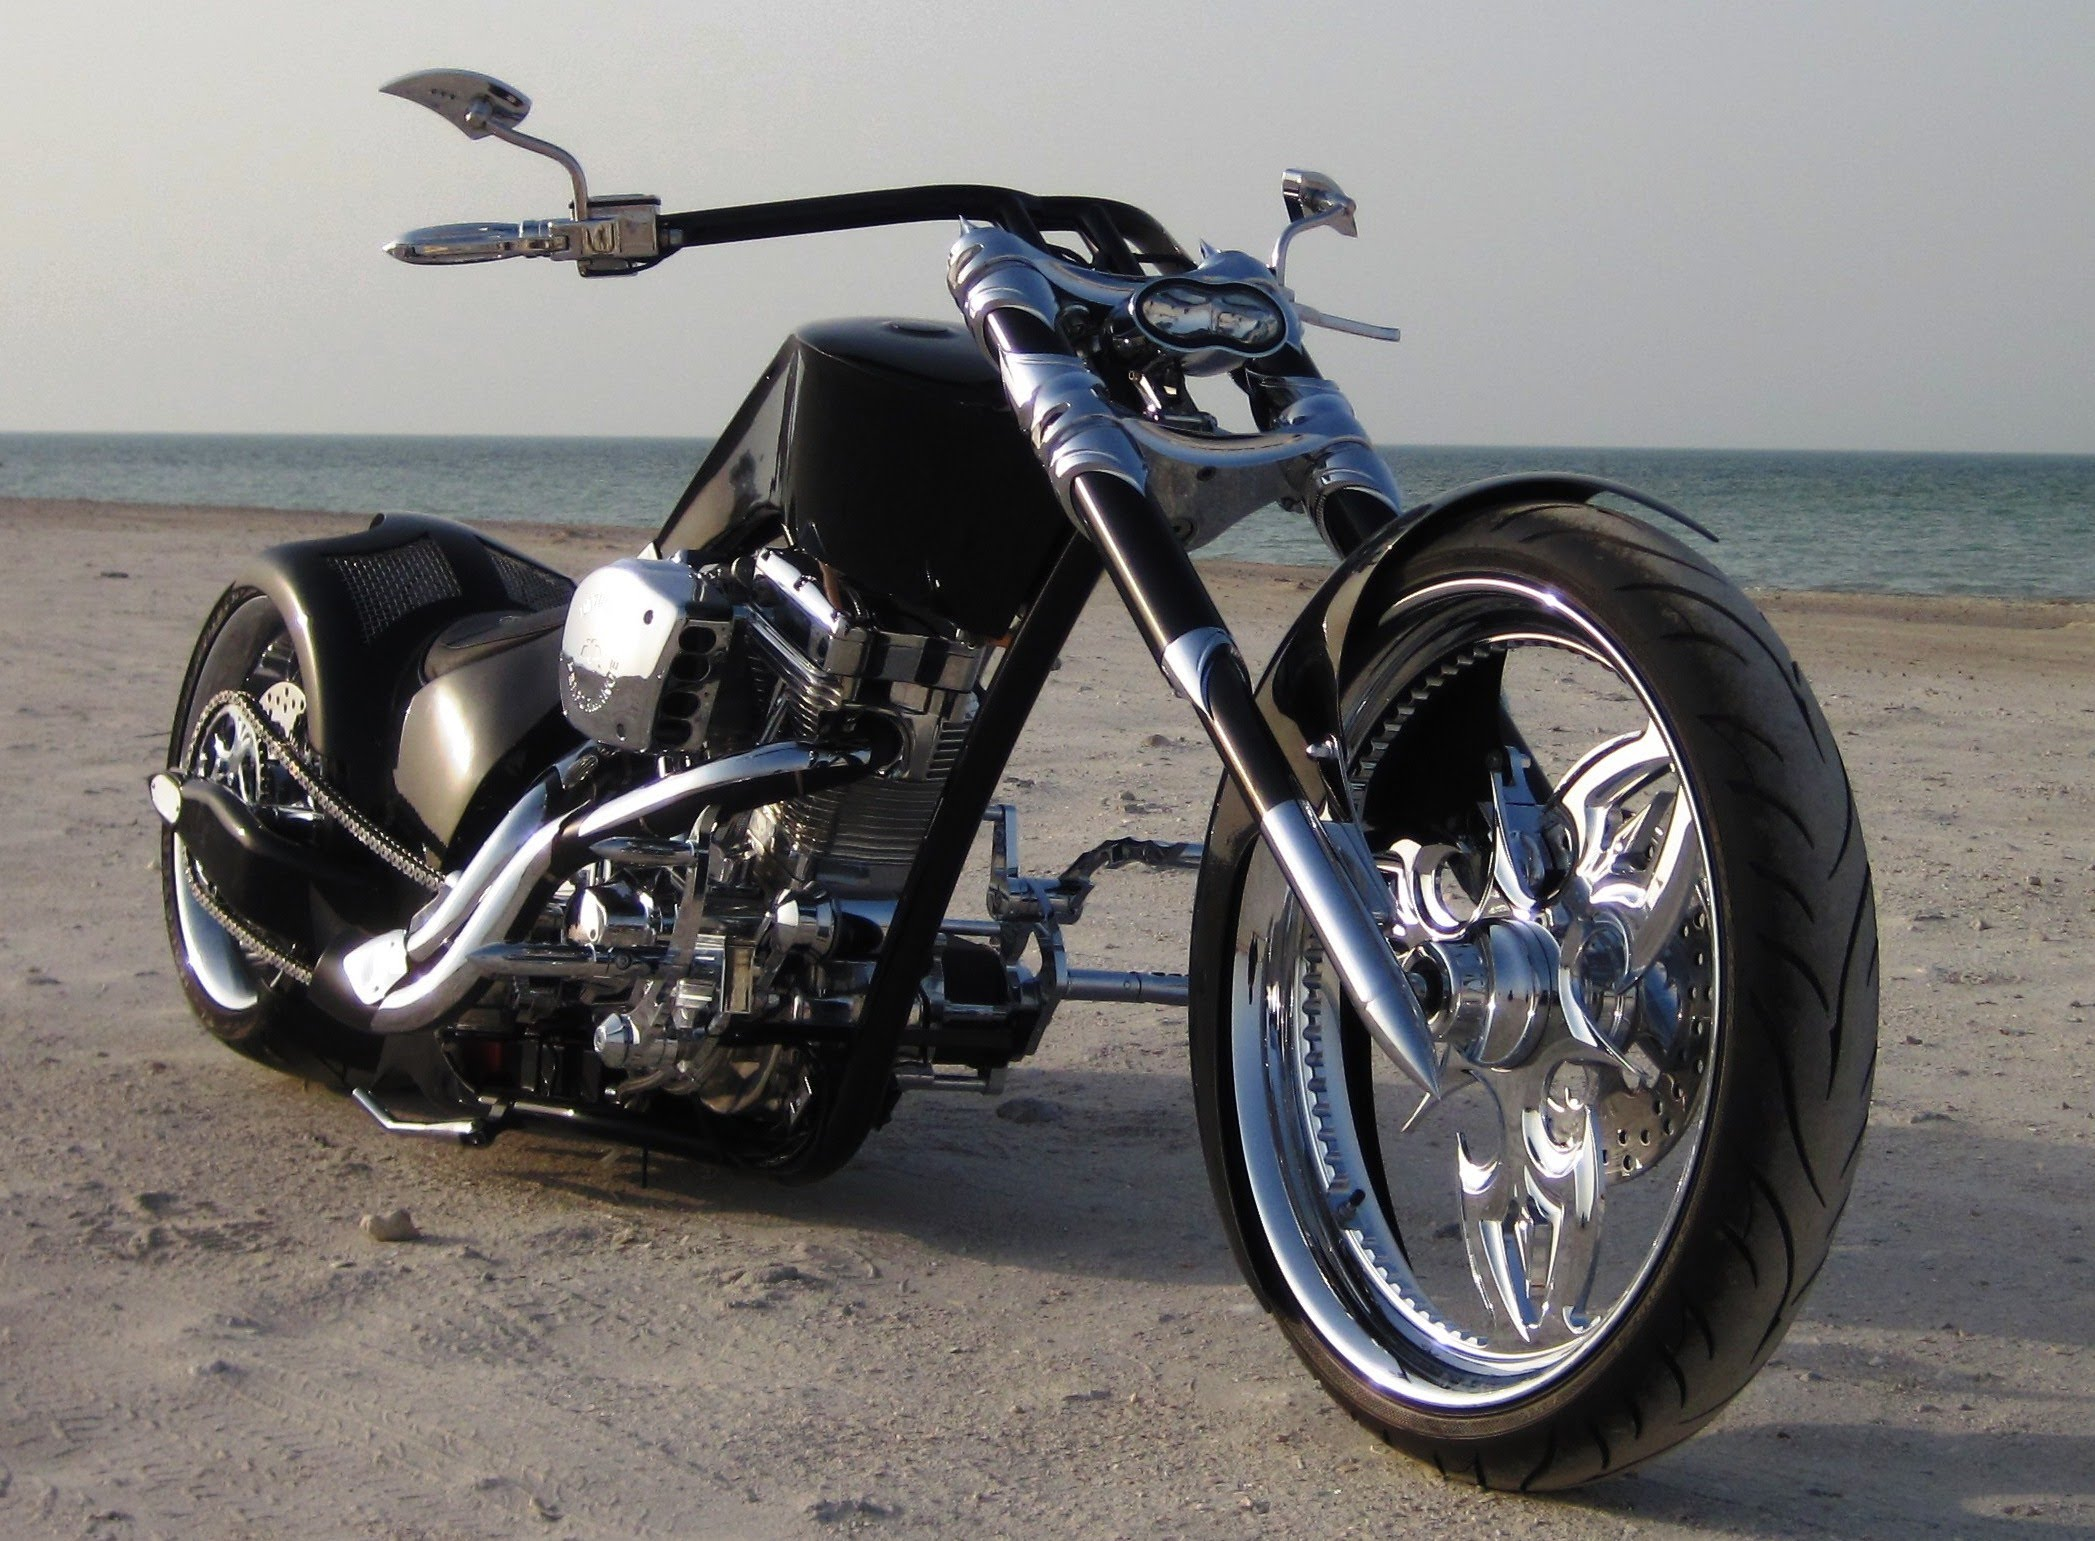 CUSTOM CHOPPER motorbike tuning bike hot rod rods e ...